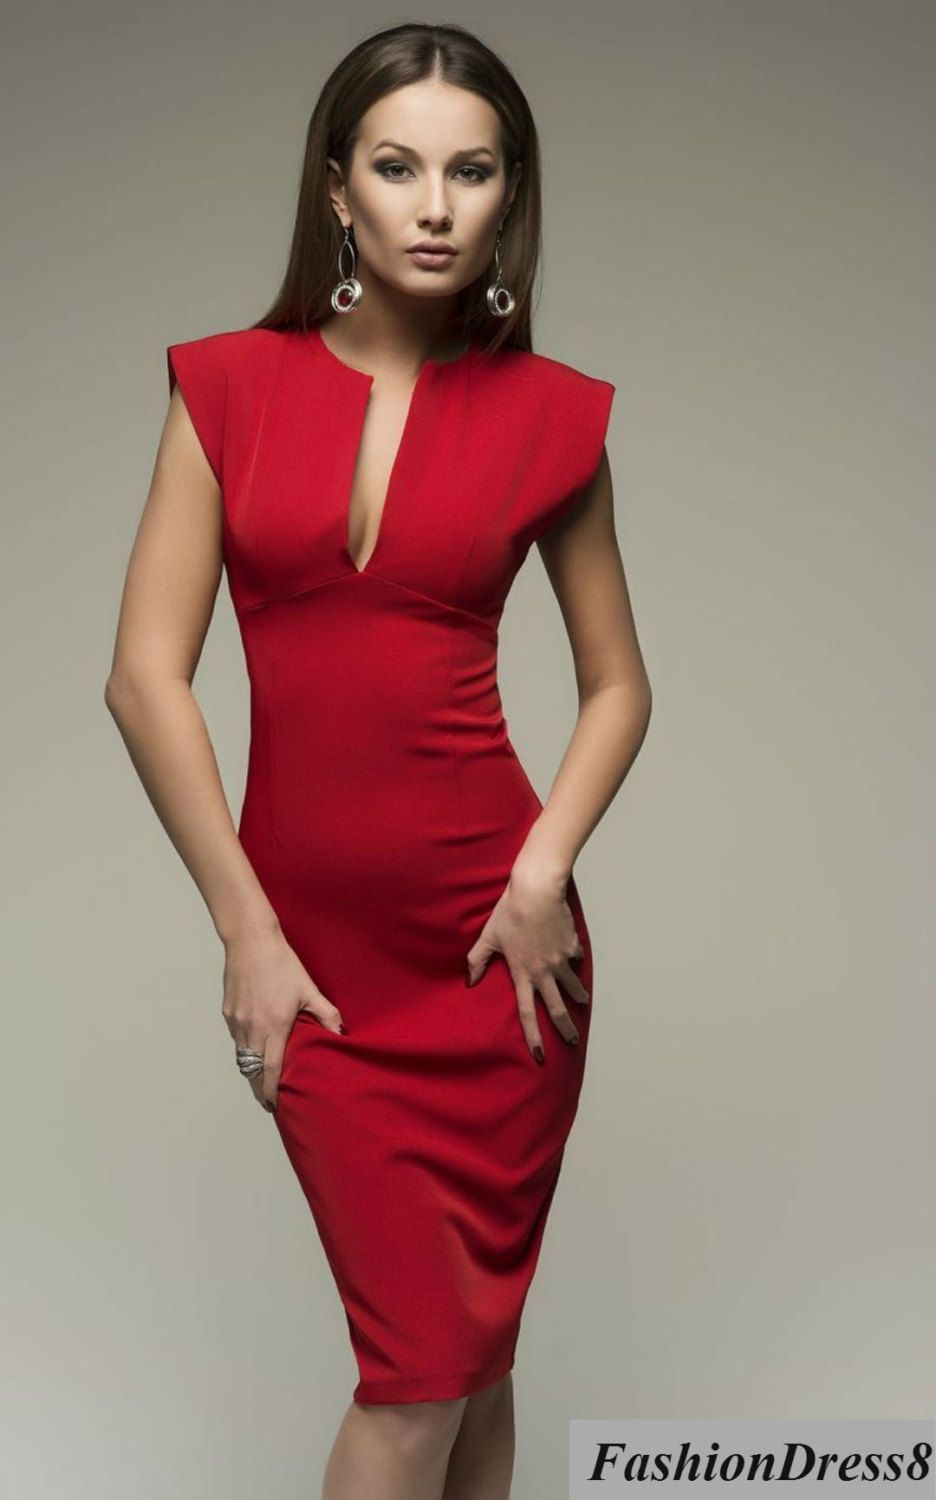 Red Dress-Chic  Pencil Knee Length Sexy Women's